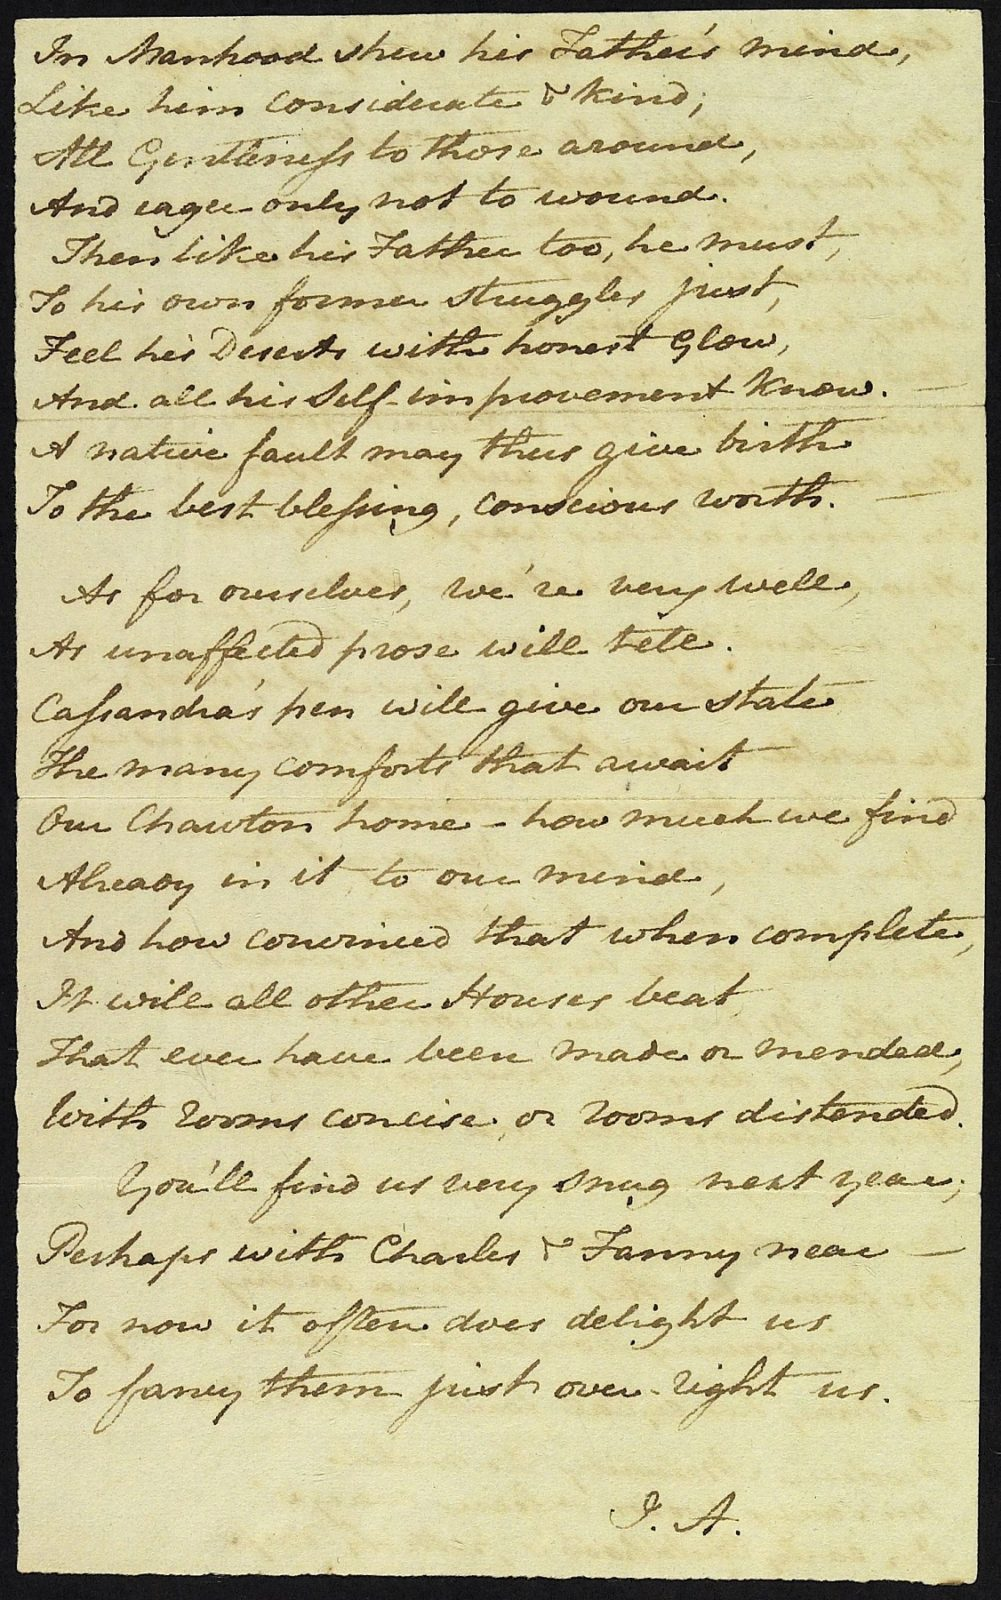 Jane Austen's copy of a letter to Francis Austen, 26 July 1809. Page 2